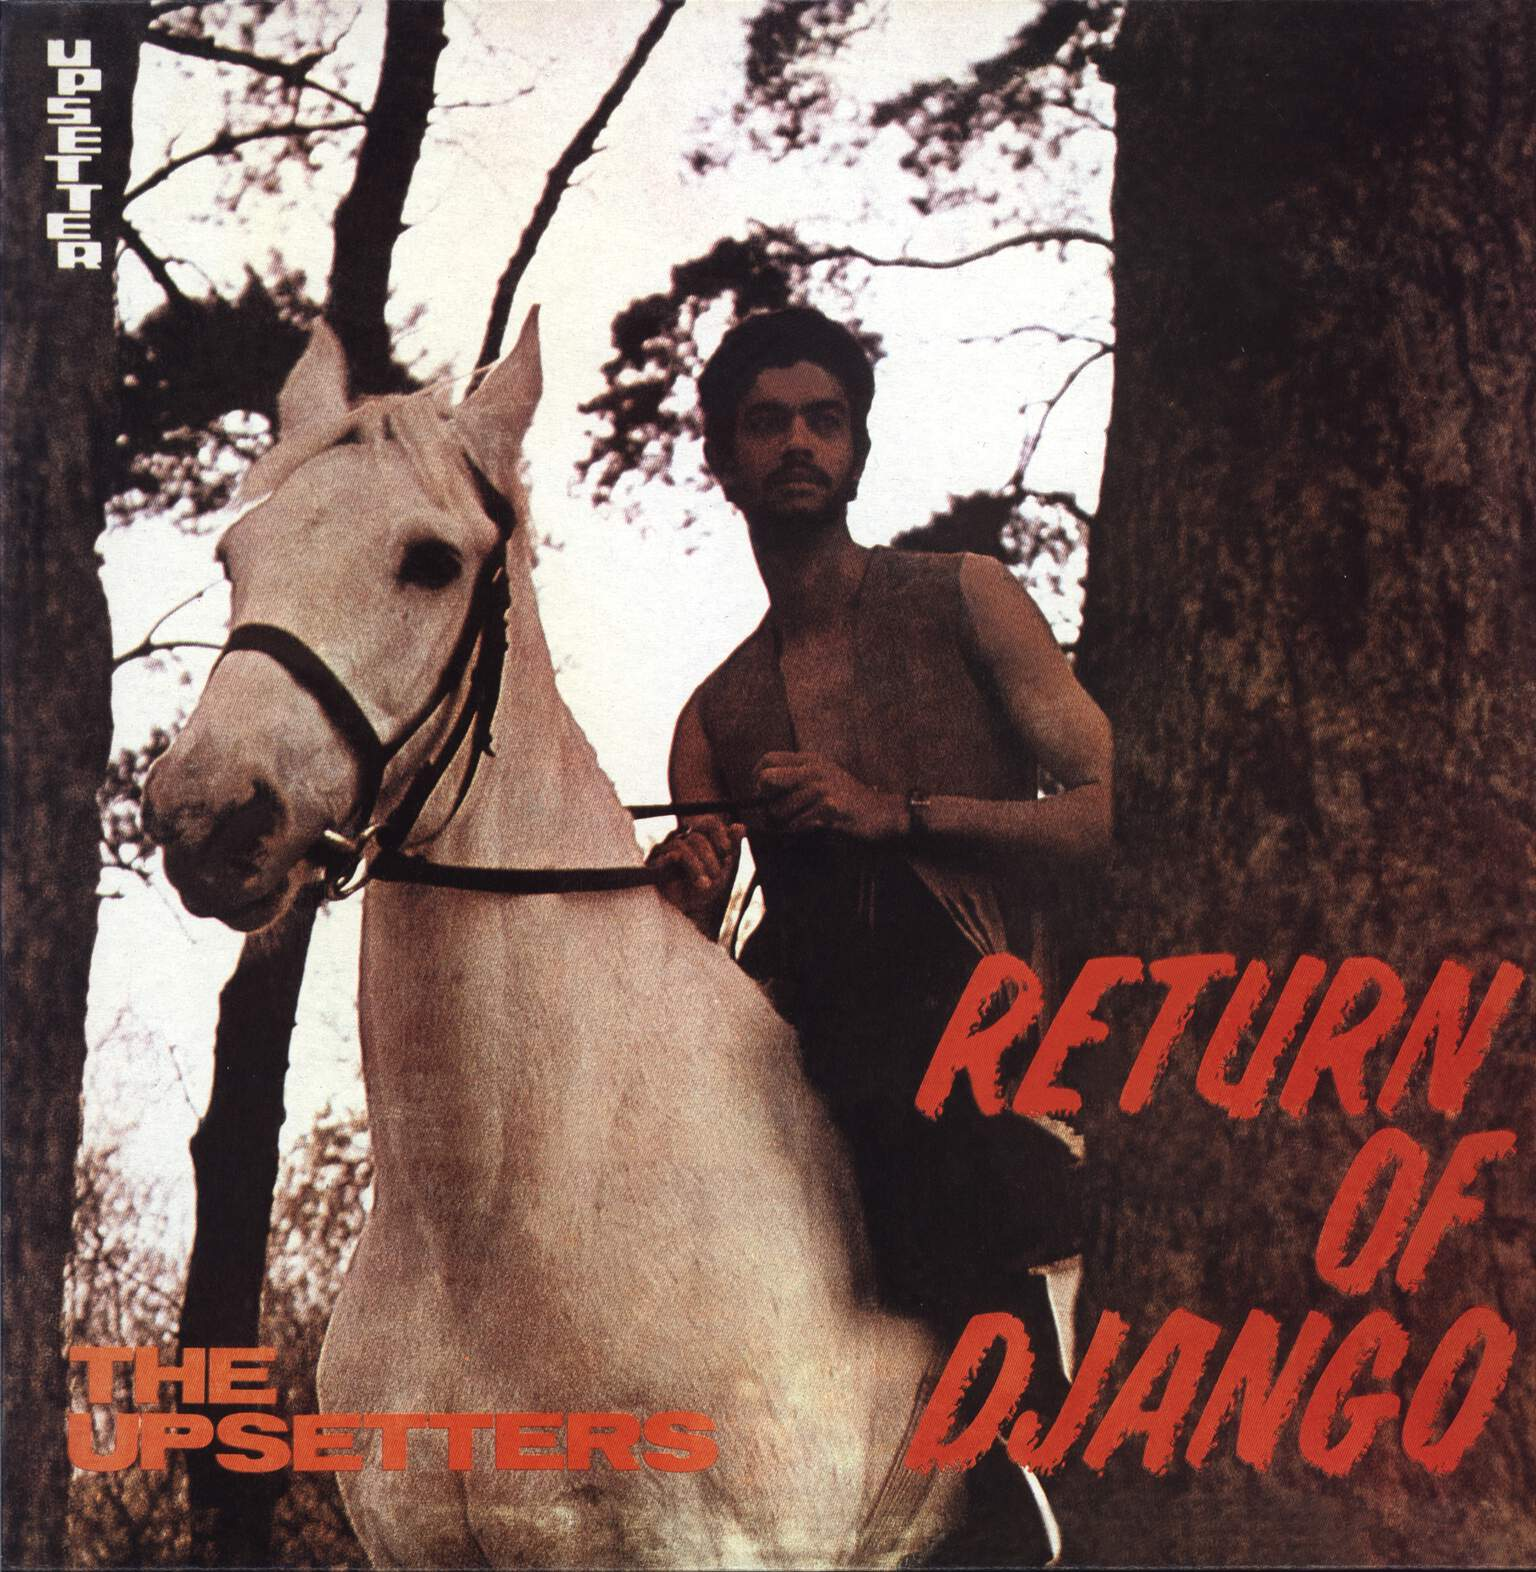 Upsetters: Return Of Django, LP (Vinyl)